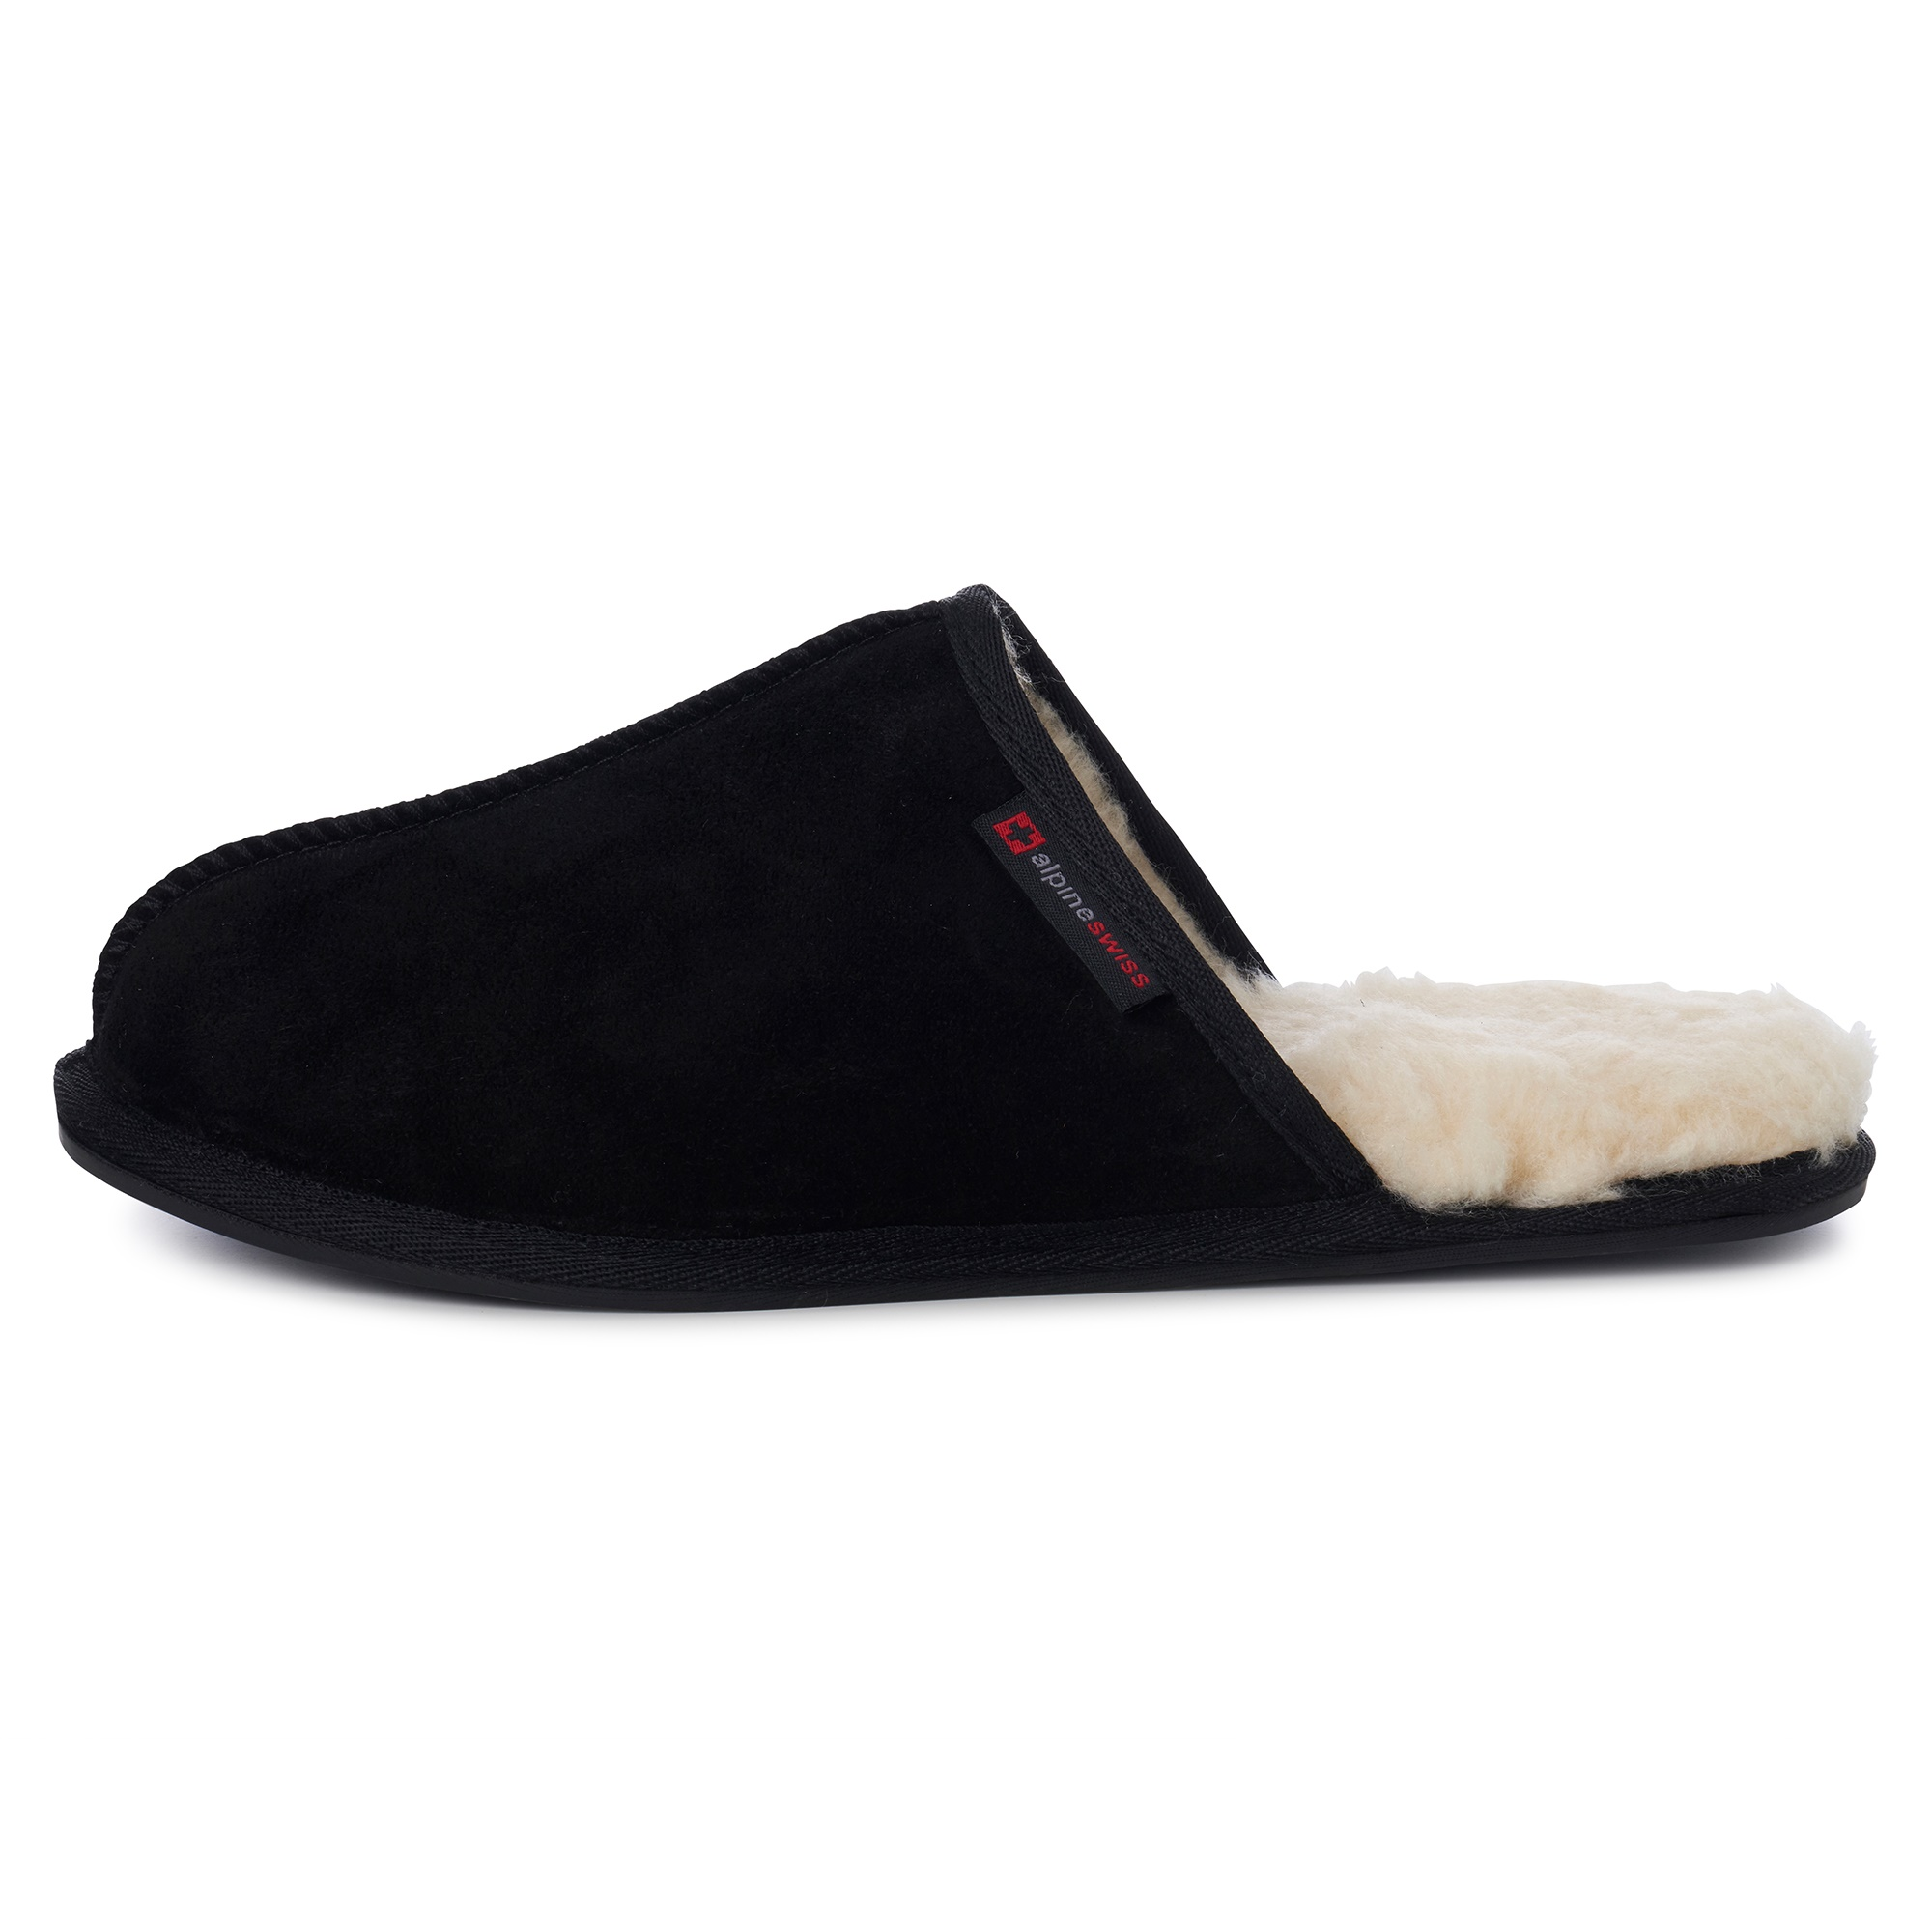 Alpine-Swiss-Mens-Suede-Memory-Foam-Scuff-Slippers-Comfort-Slip-On-House-Shoes thumbnail 13